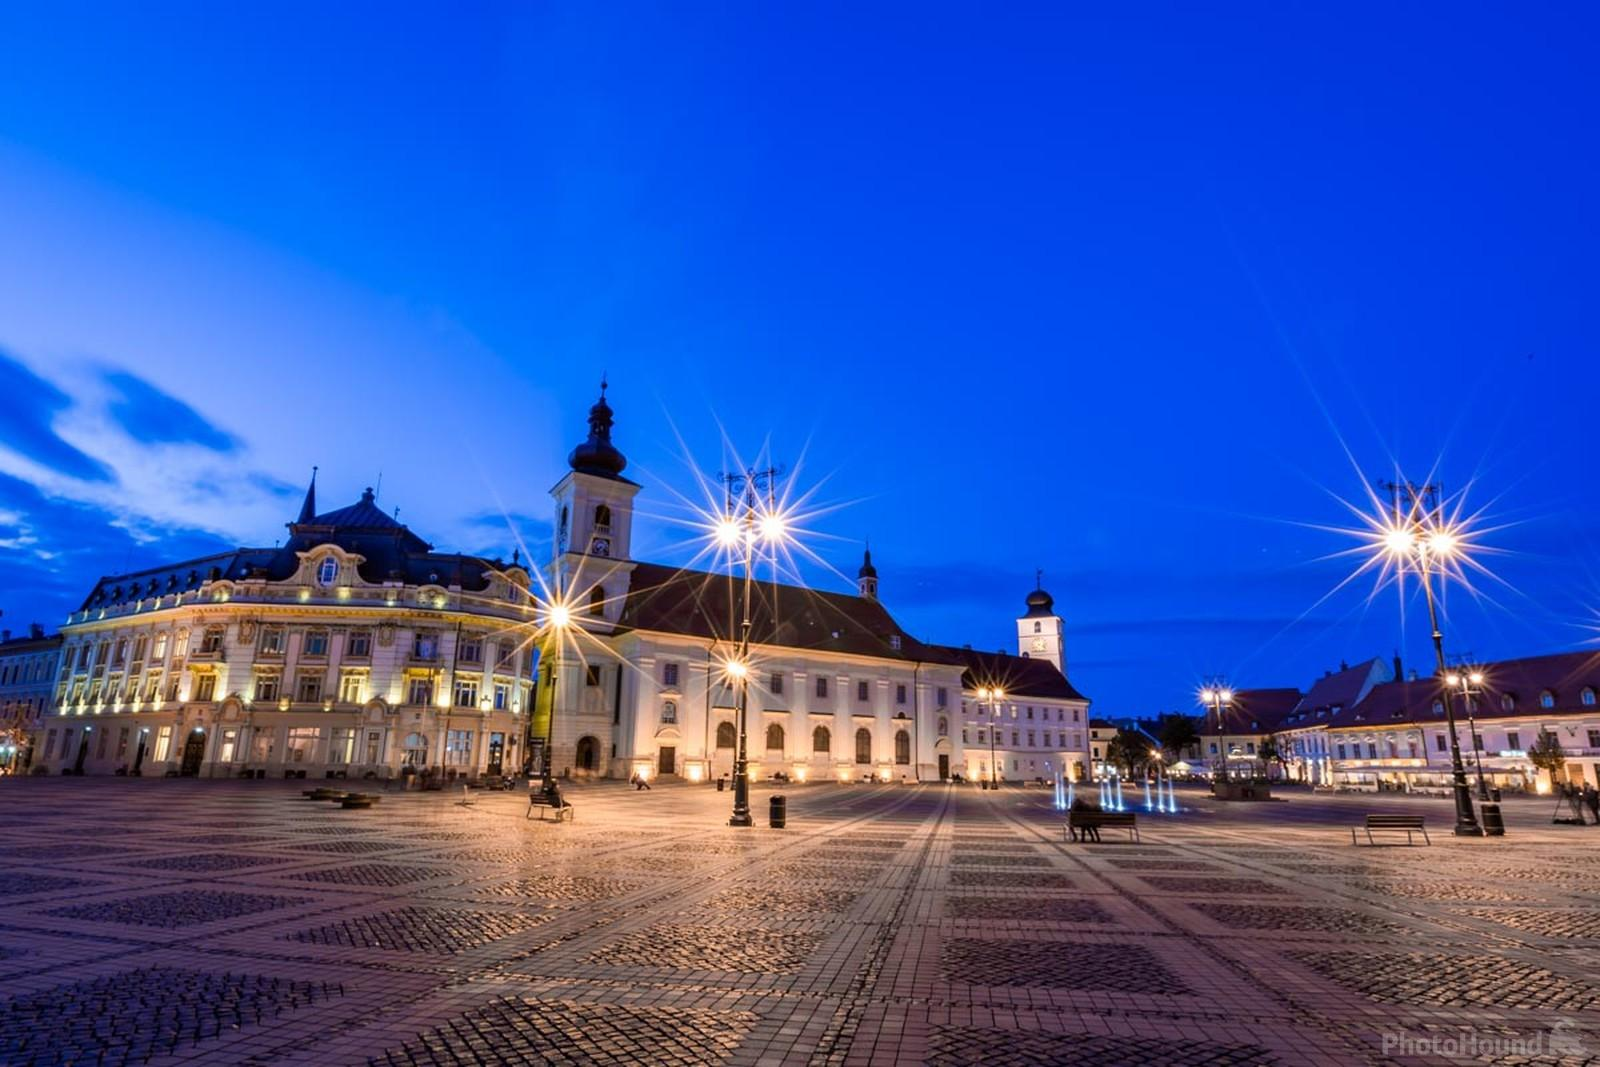 Sibiu is probably the most beautiful city in Romania.